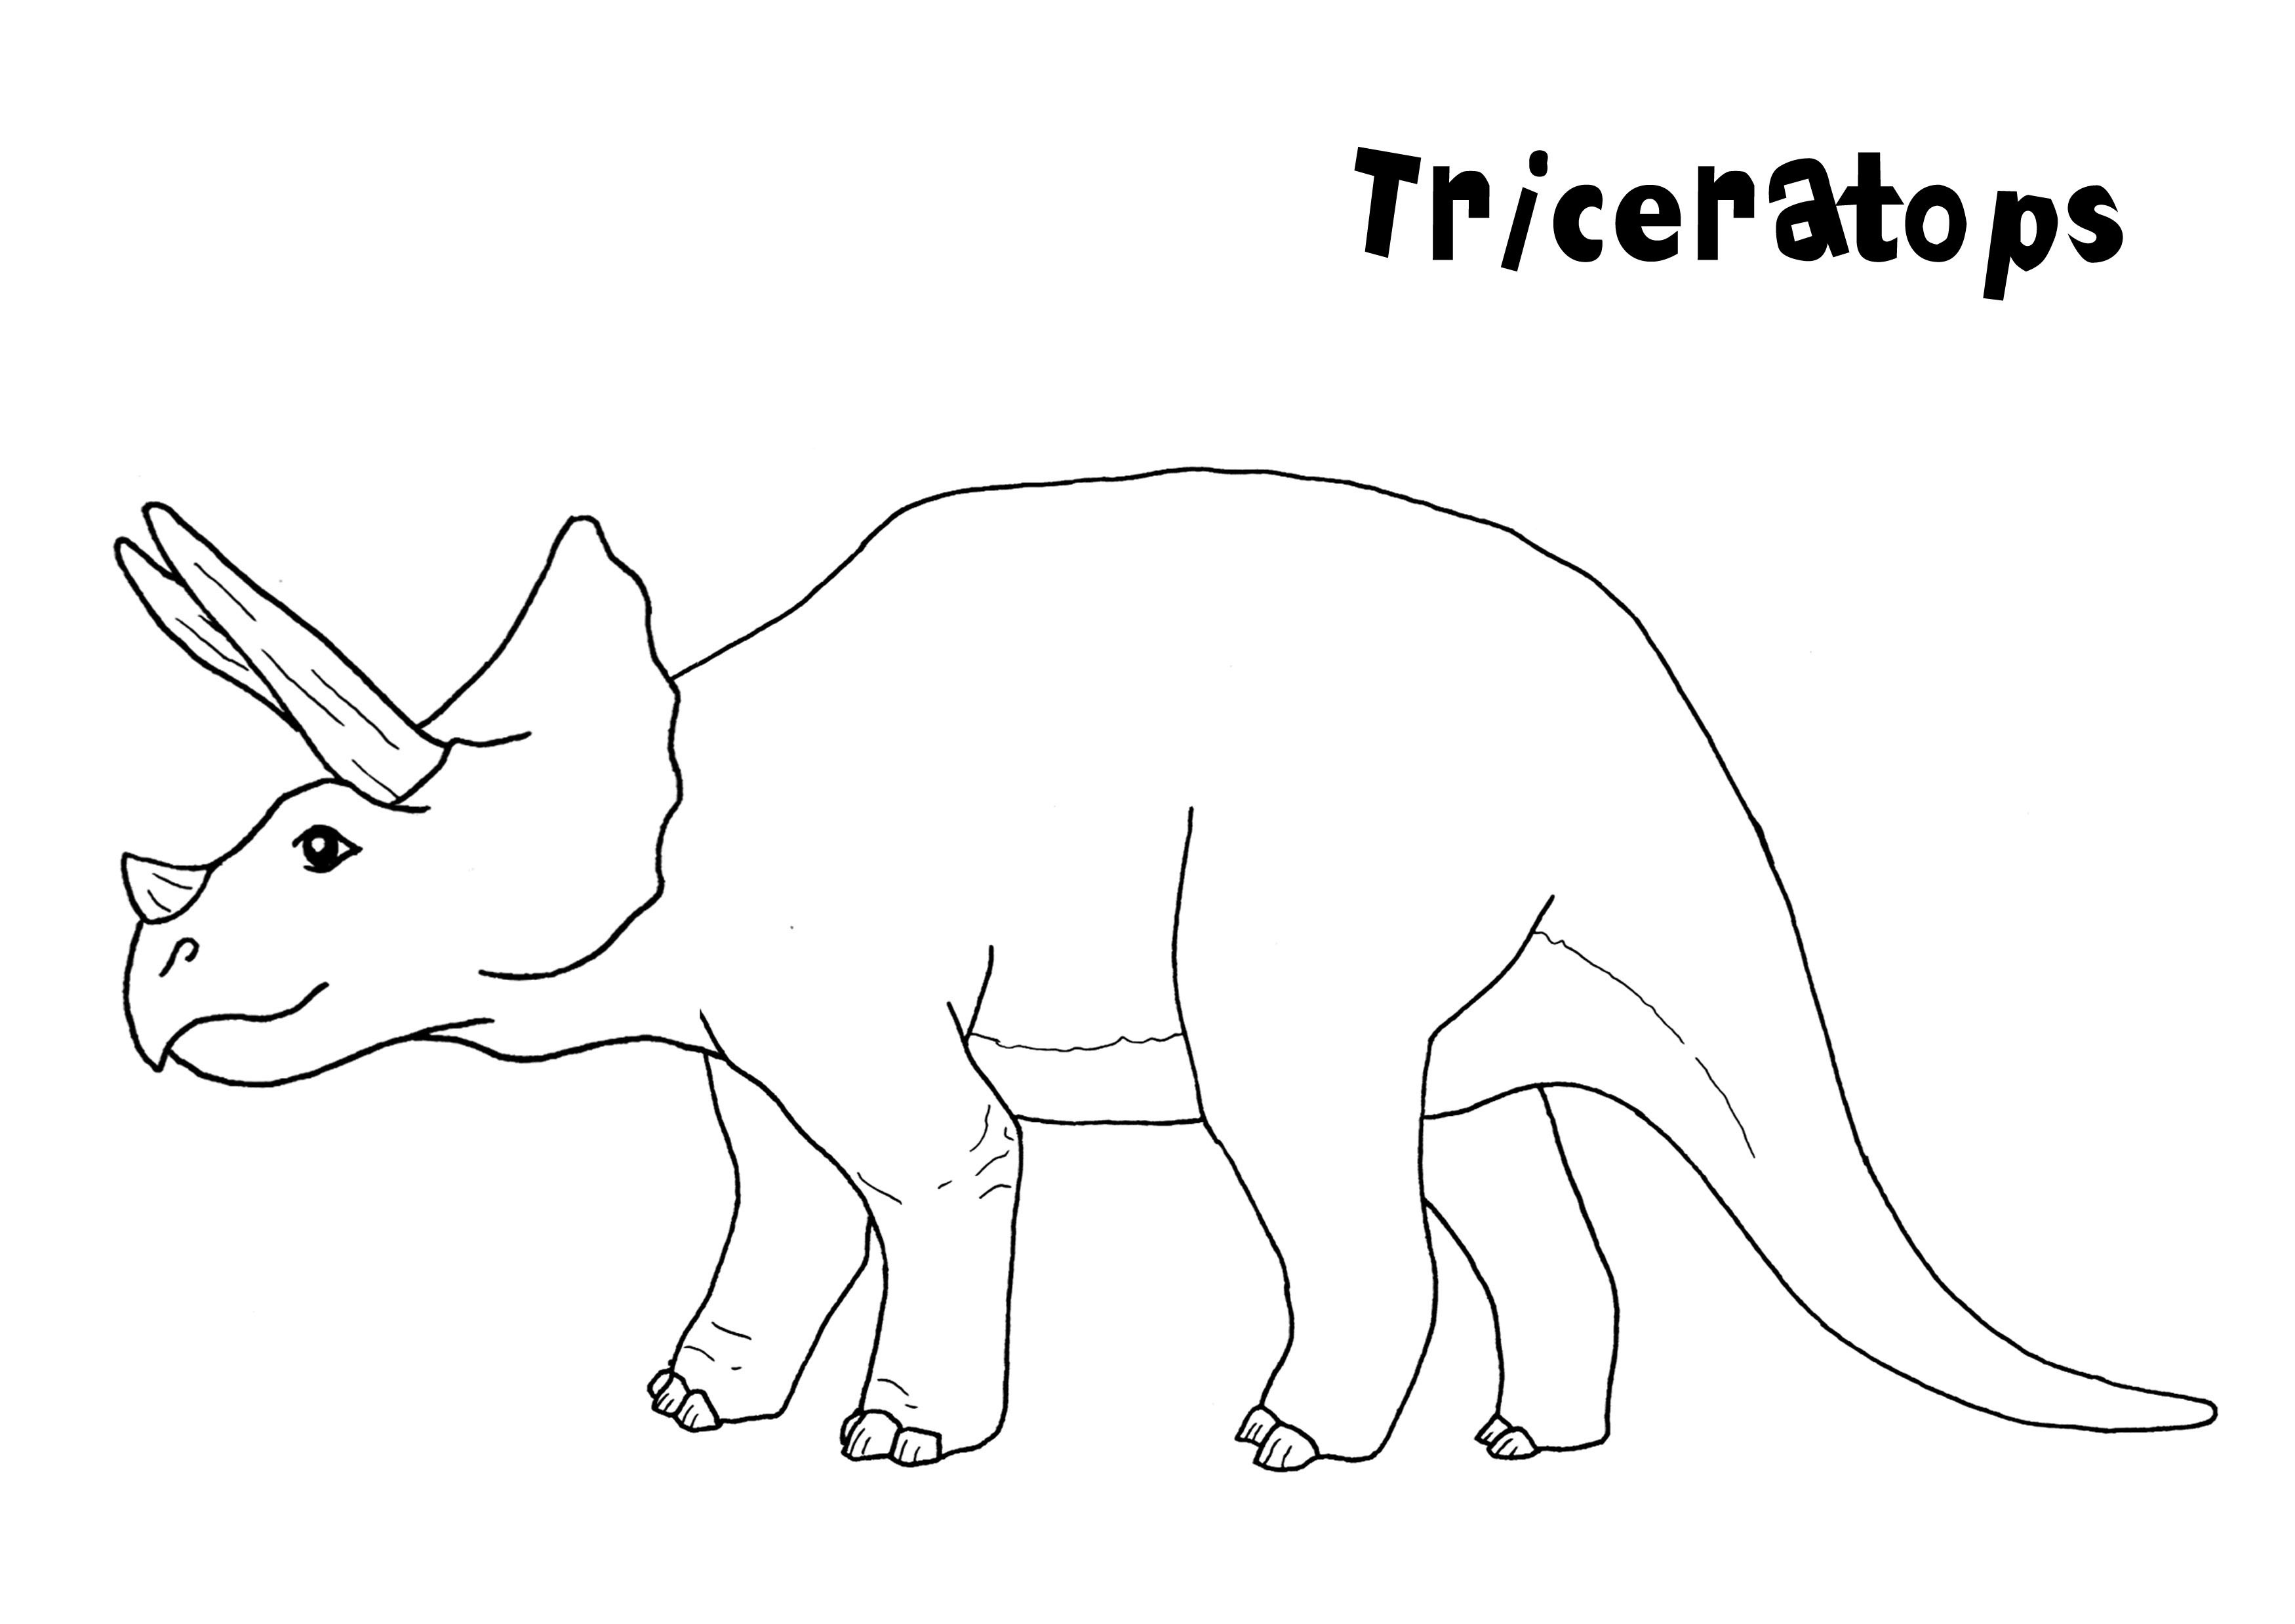 T rex coloring pages - T Rex Coloring Pages Free Printable Triceratops Coloring Pages For Kids Download